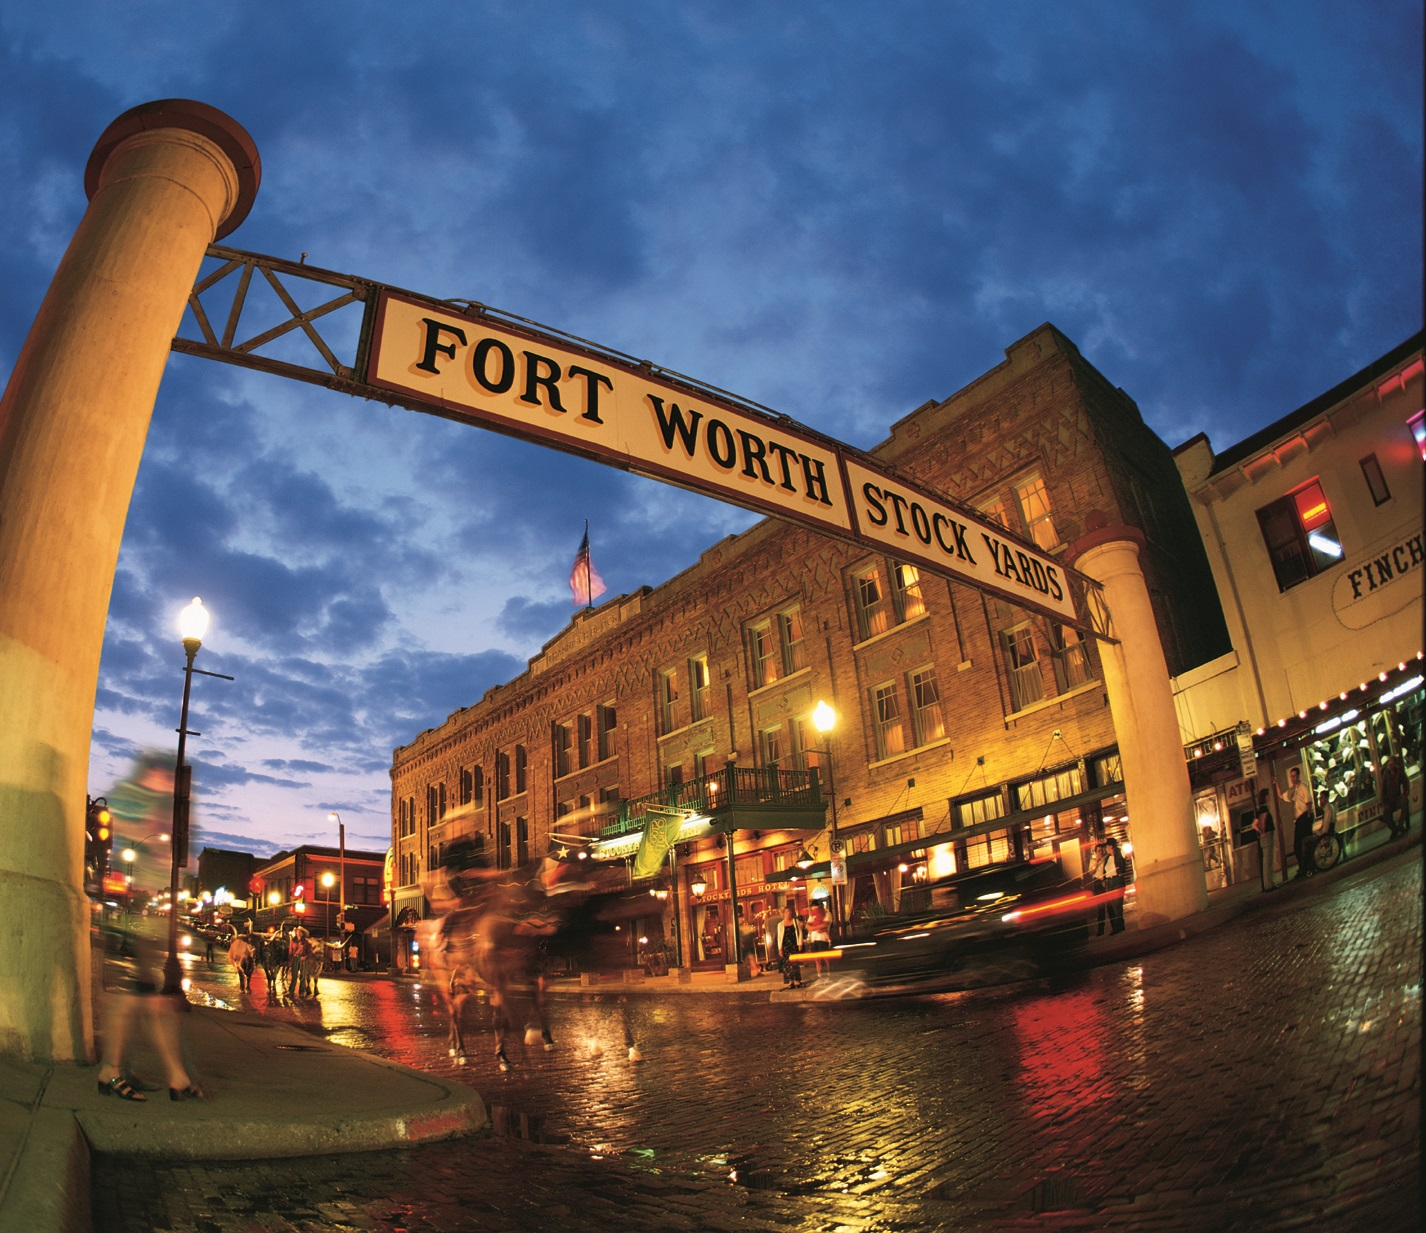 Fort Worth Stockyards, Texas